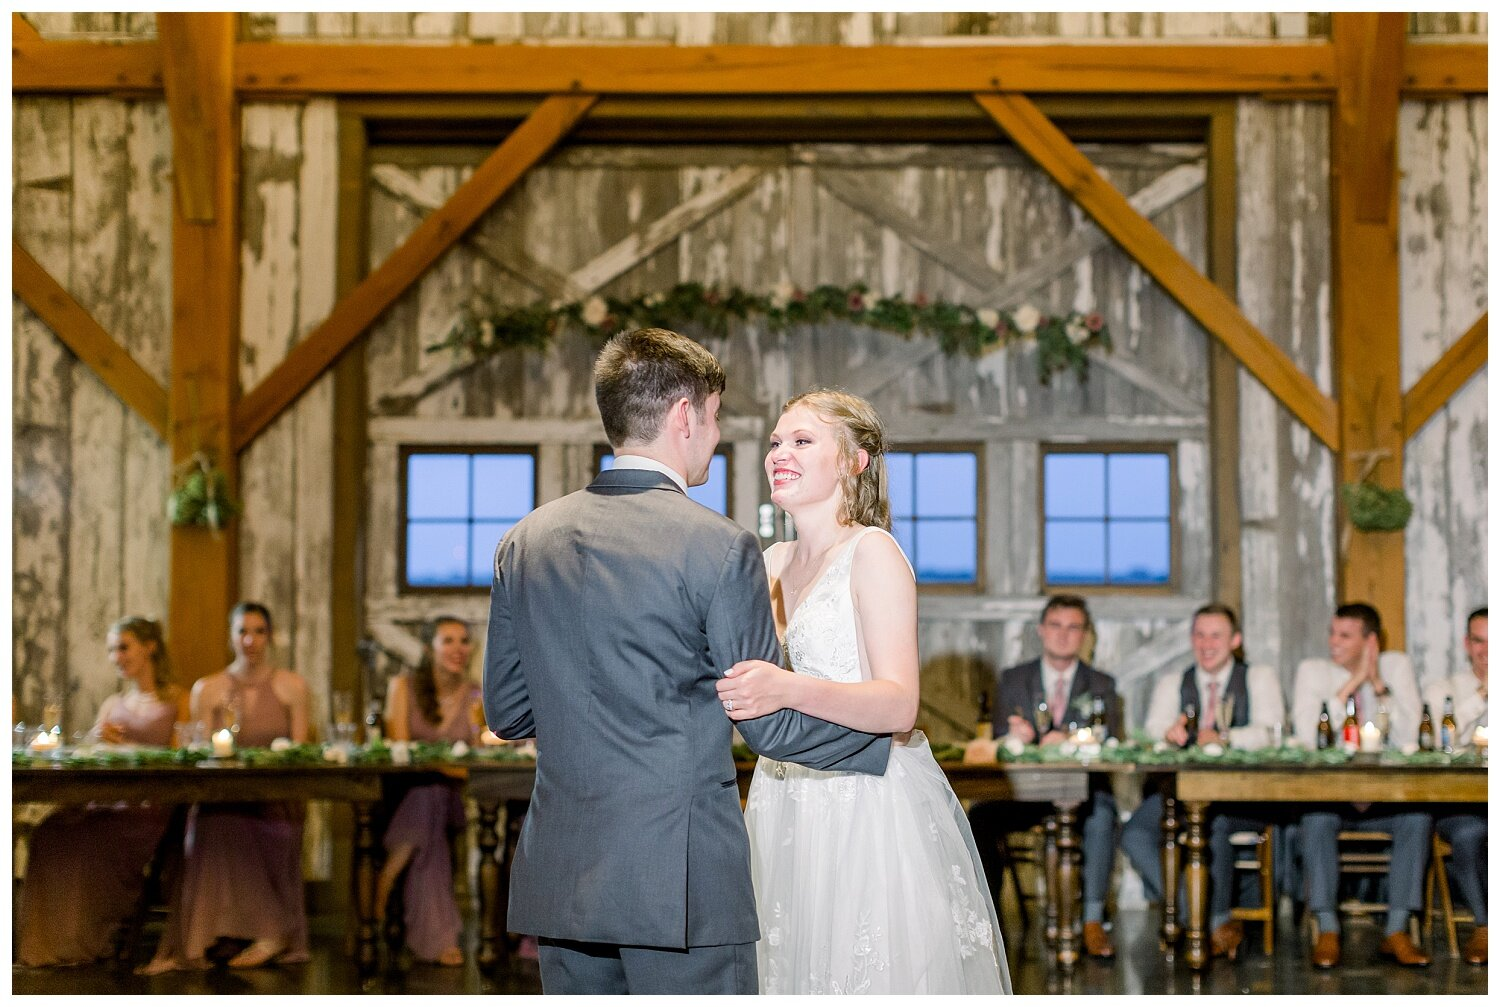 Weston-Red-Barn-Farm-Timber-Barn-Wedding-S+Z-0811-Elizabeth-Ladean-Photography_photo-_9750.jpg